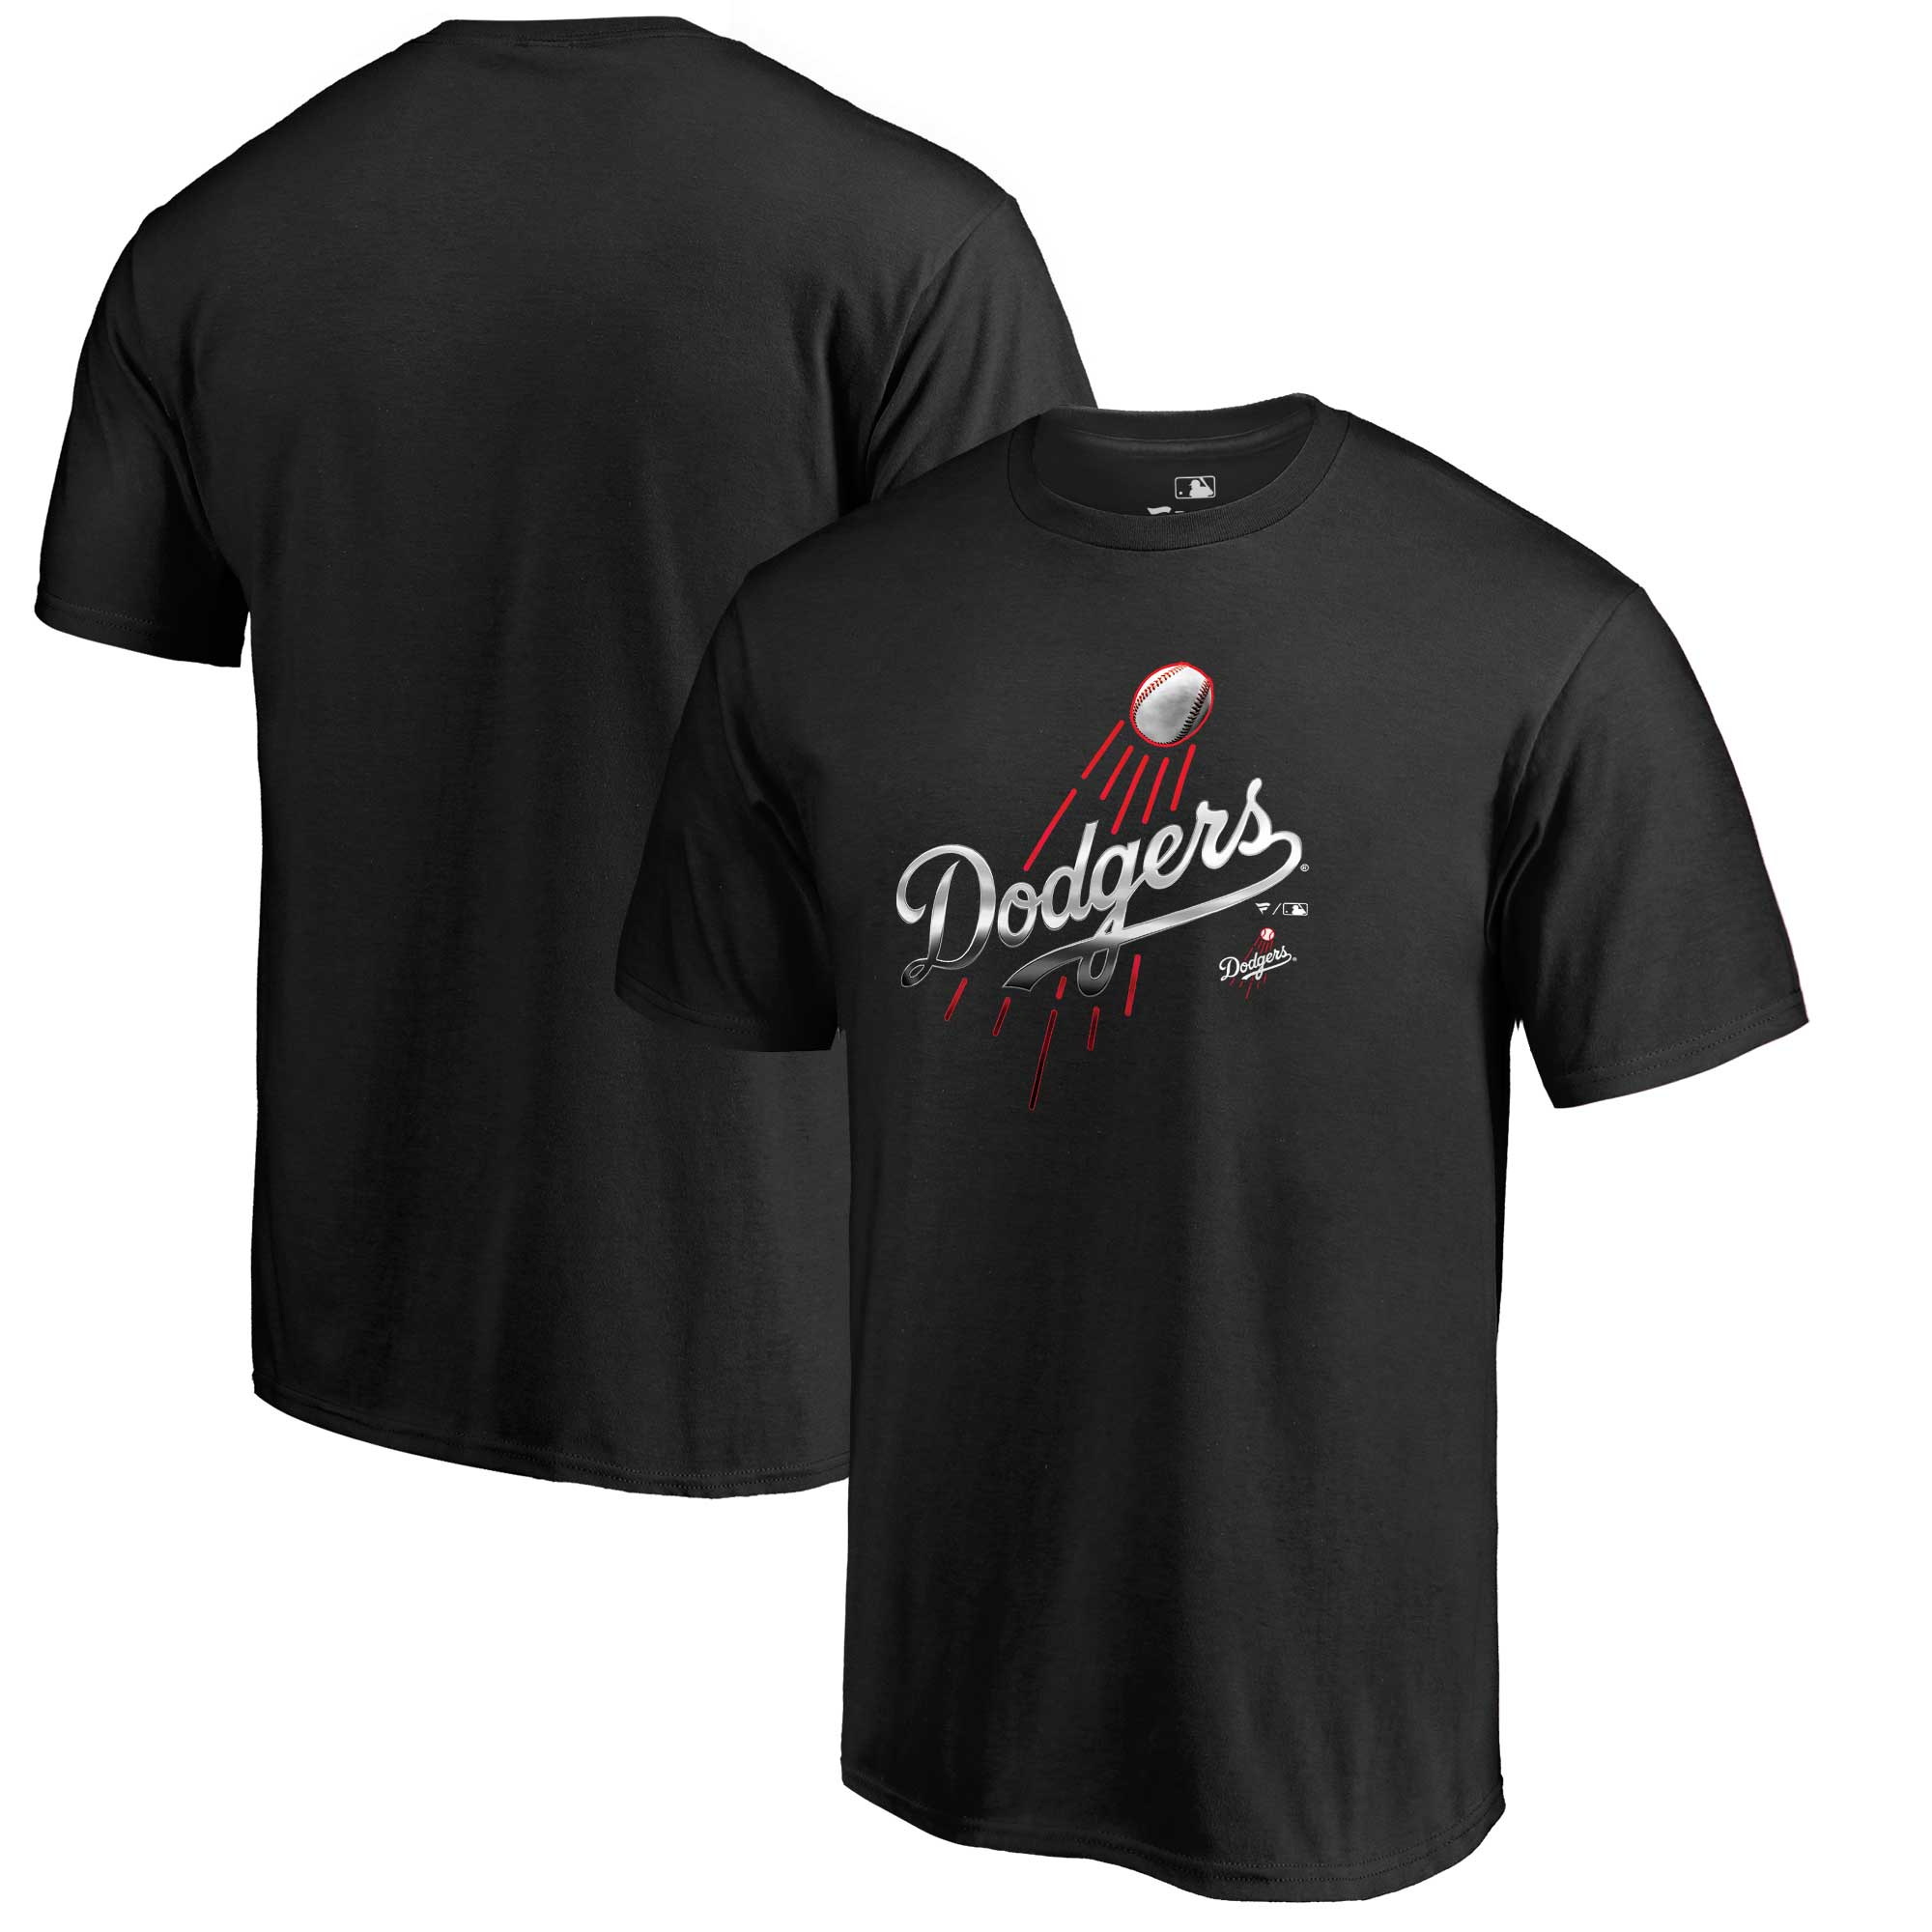 Los Angeles Dodgers Fanatics Branded Midnight Mascot T-Shirt - Black